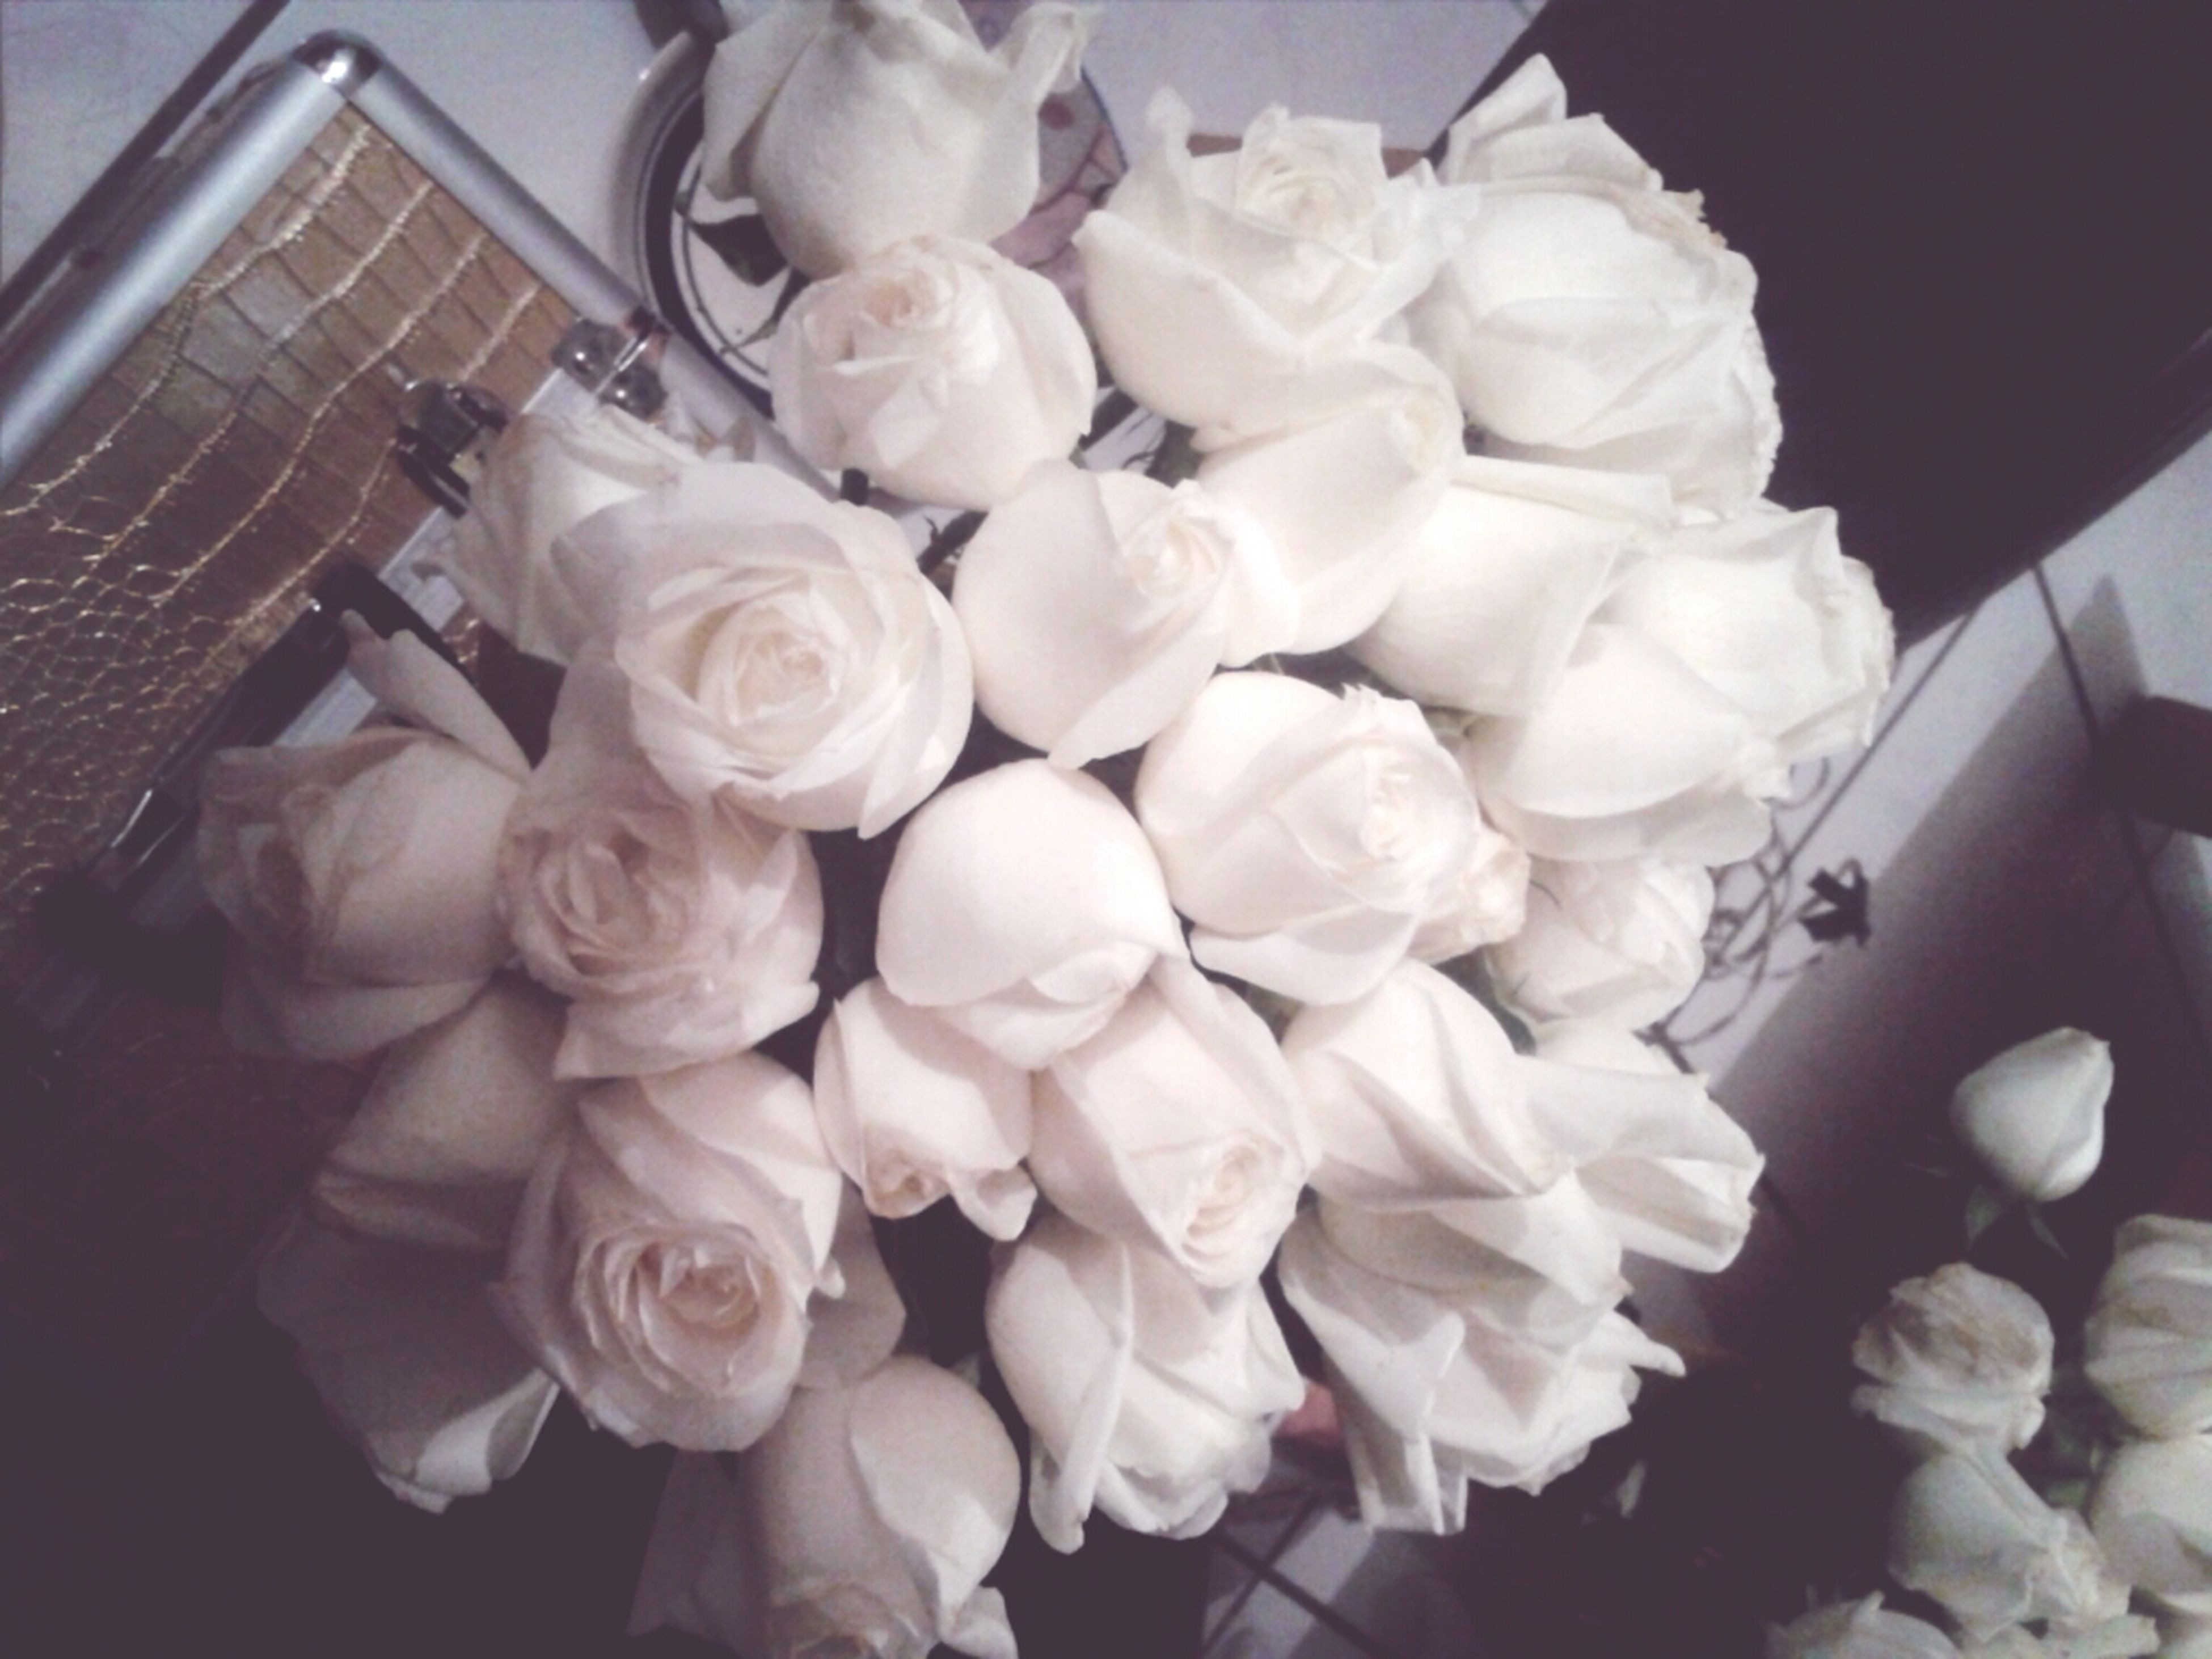 indoors, freshness, flower, high angle view, still life, table, petal, fragility, rose - flower, close-up, bouquet, vase, food and drink, bunch of flowers, flower head, no people, white color, food, decoration, variation